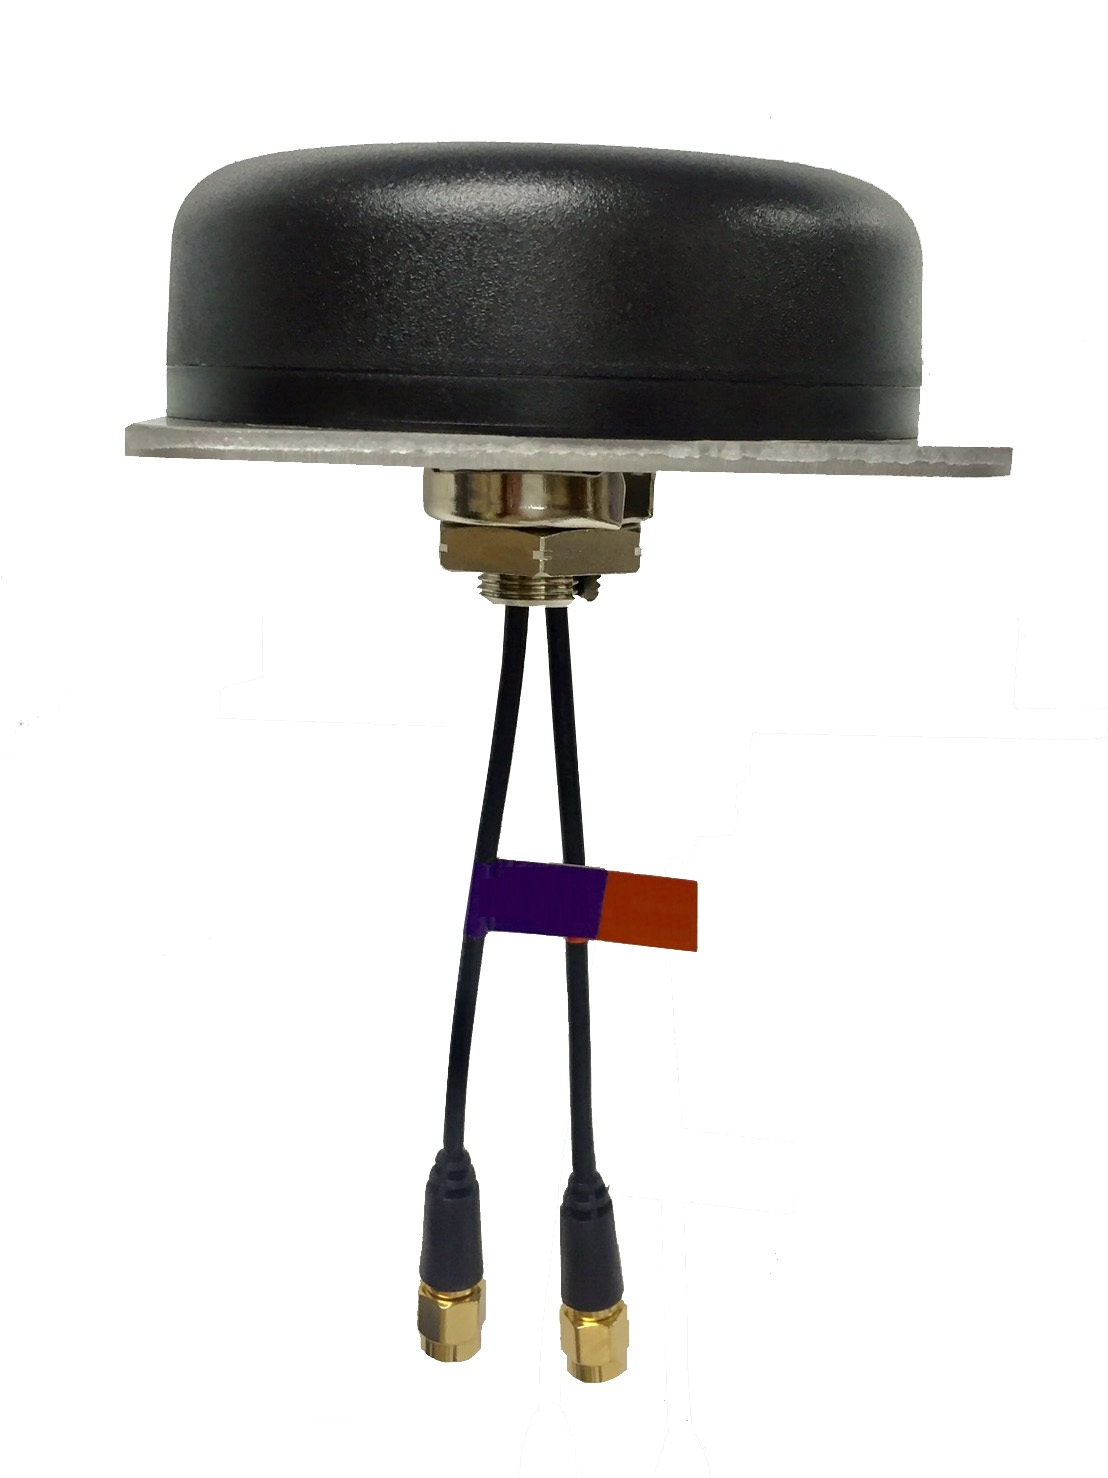 4x4 Pick Up Combined Antenna for Body Parts made by Chinmore Industry Co., LTD. 竣茂工業有限公司 - MatchSupplier.com